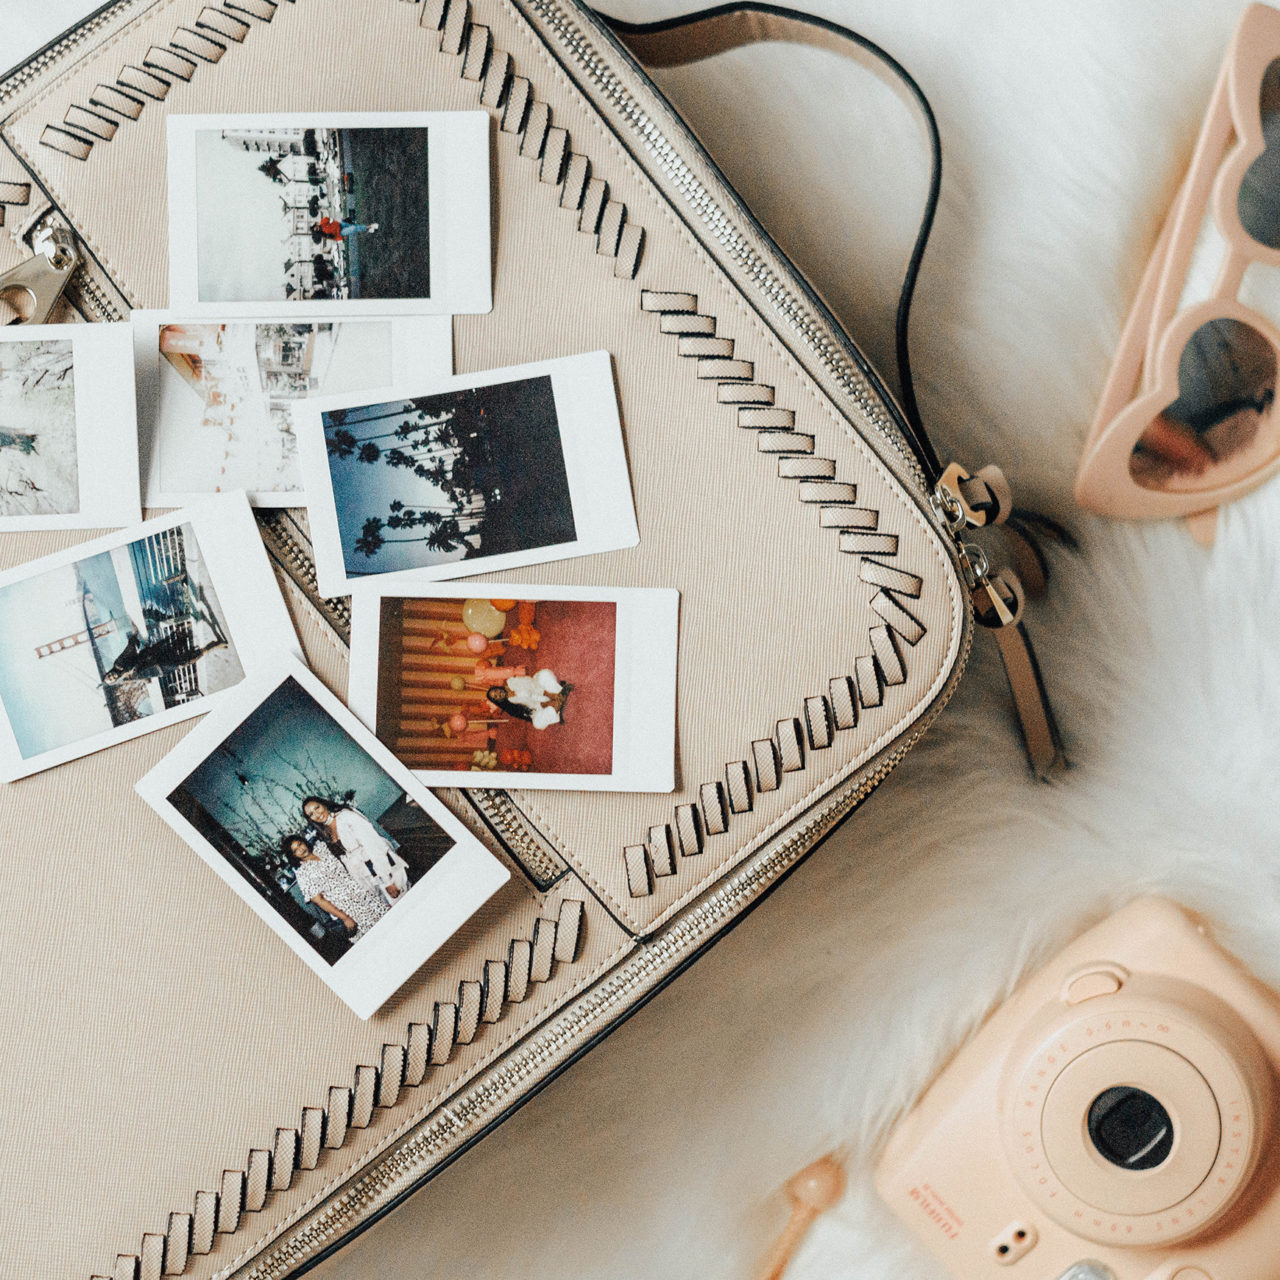 Bougie On A Budget: A Travel Guide